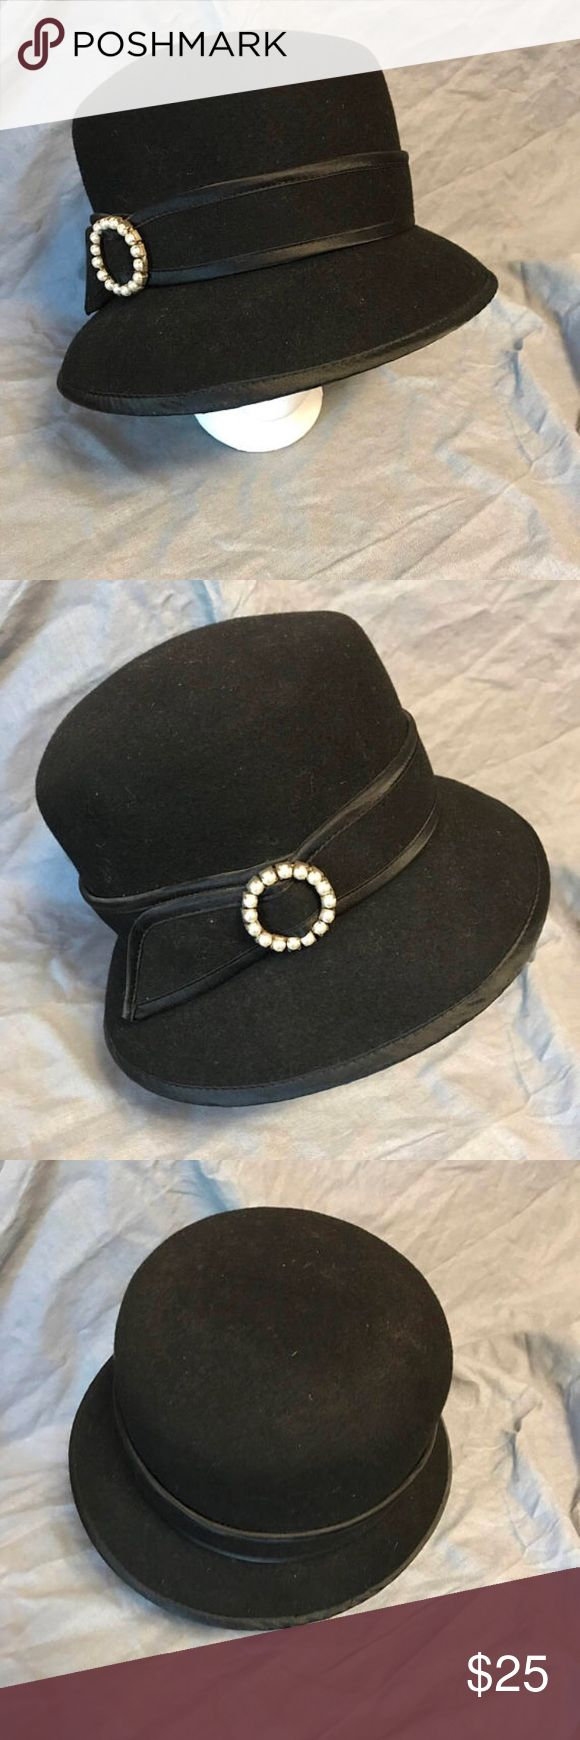 "VTG pillbox hat with Faux Pearl accent Vintage pill box hat, black with pearl accessories on the side.  Super cute and classy! Perfect for a cool evening out.  Inside head circumference is 22"". Brim is asymmetrical and about 11"" across. About 5"" tall.  I photoed as many of the measurements as I thought were relevant, but please feel free to message me if you'd like additional measurements. Comes from a smoke-free, dog-friendly home. Betmar New York Accessories Hats"